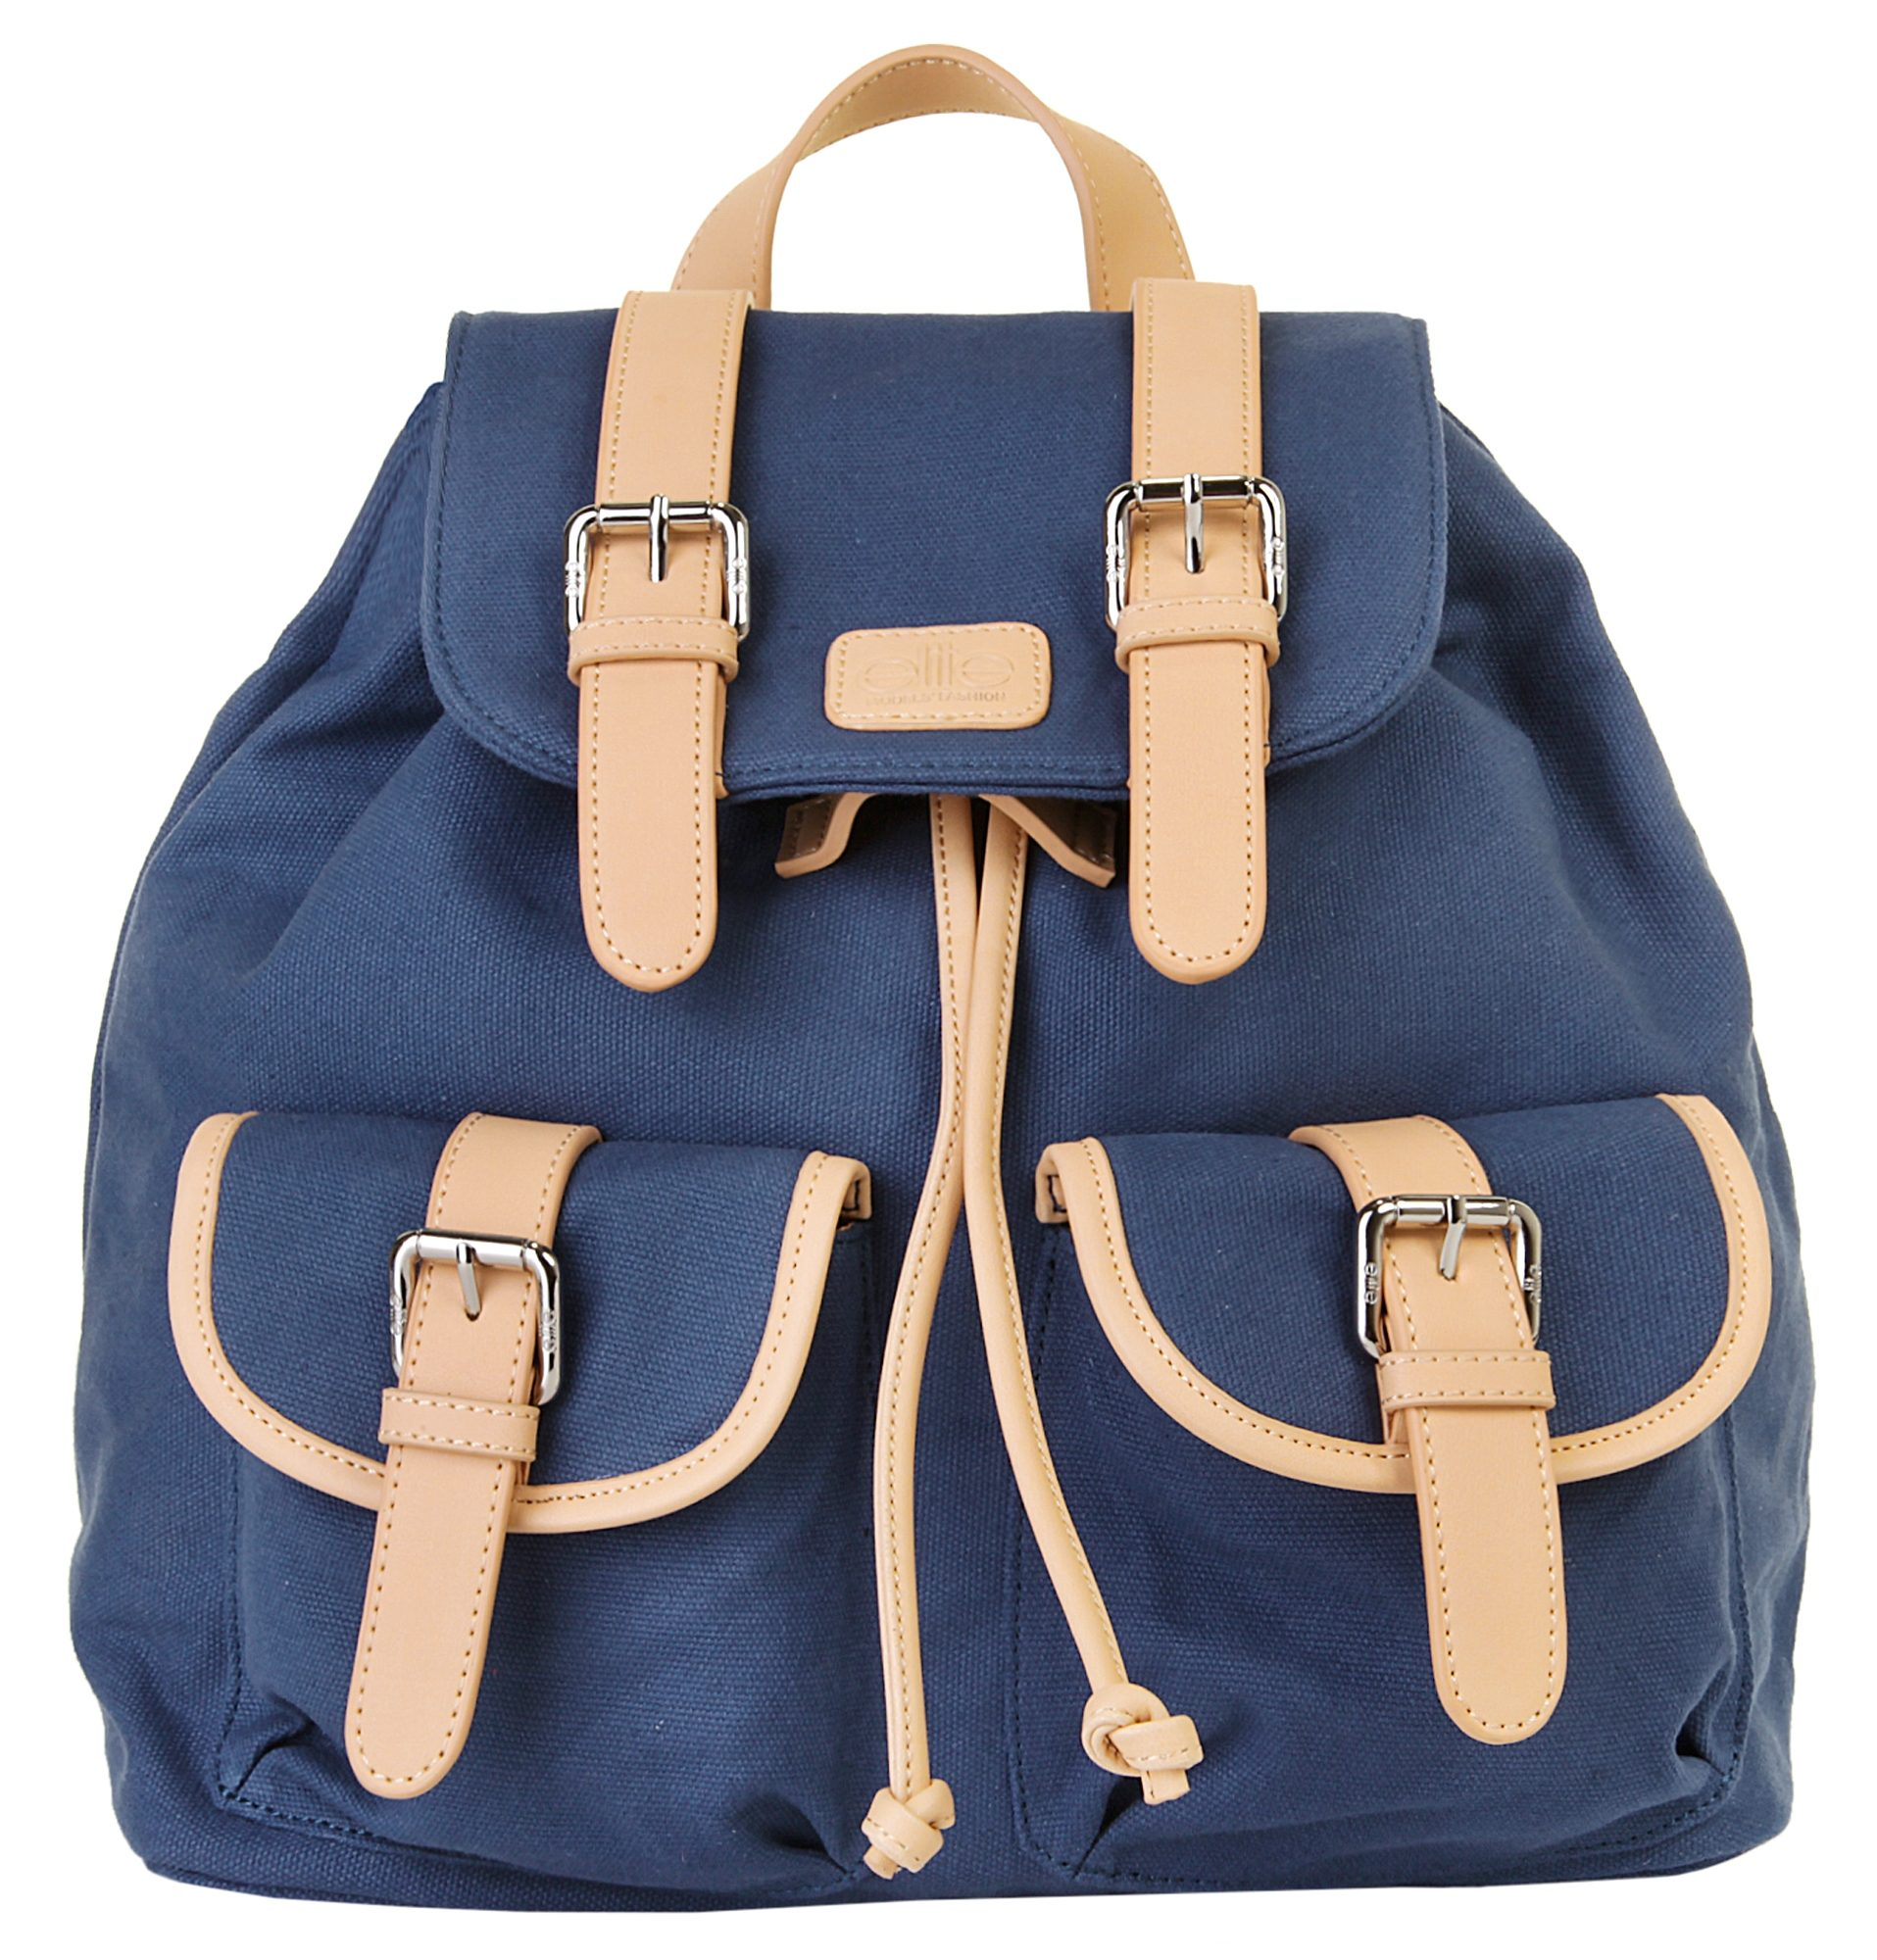 ELITE MODEN Canvas Damen Rucksack